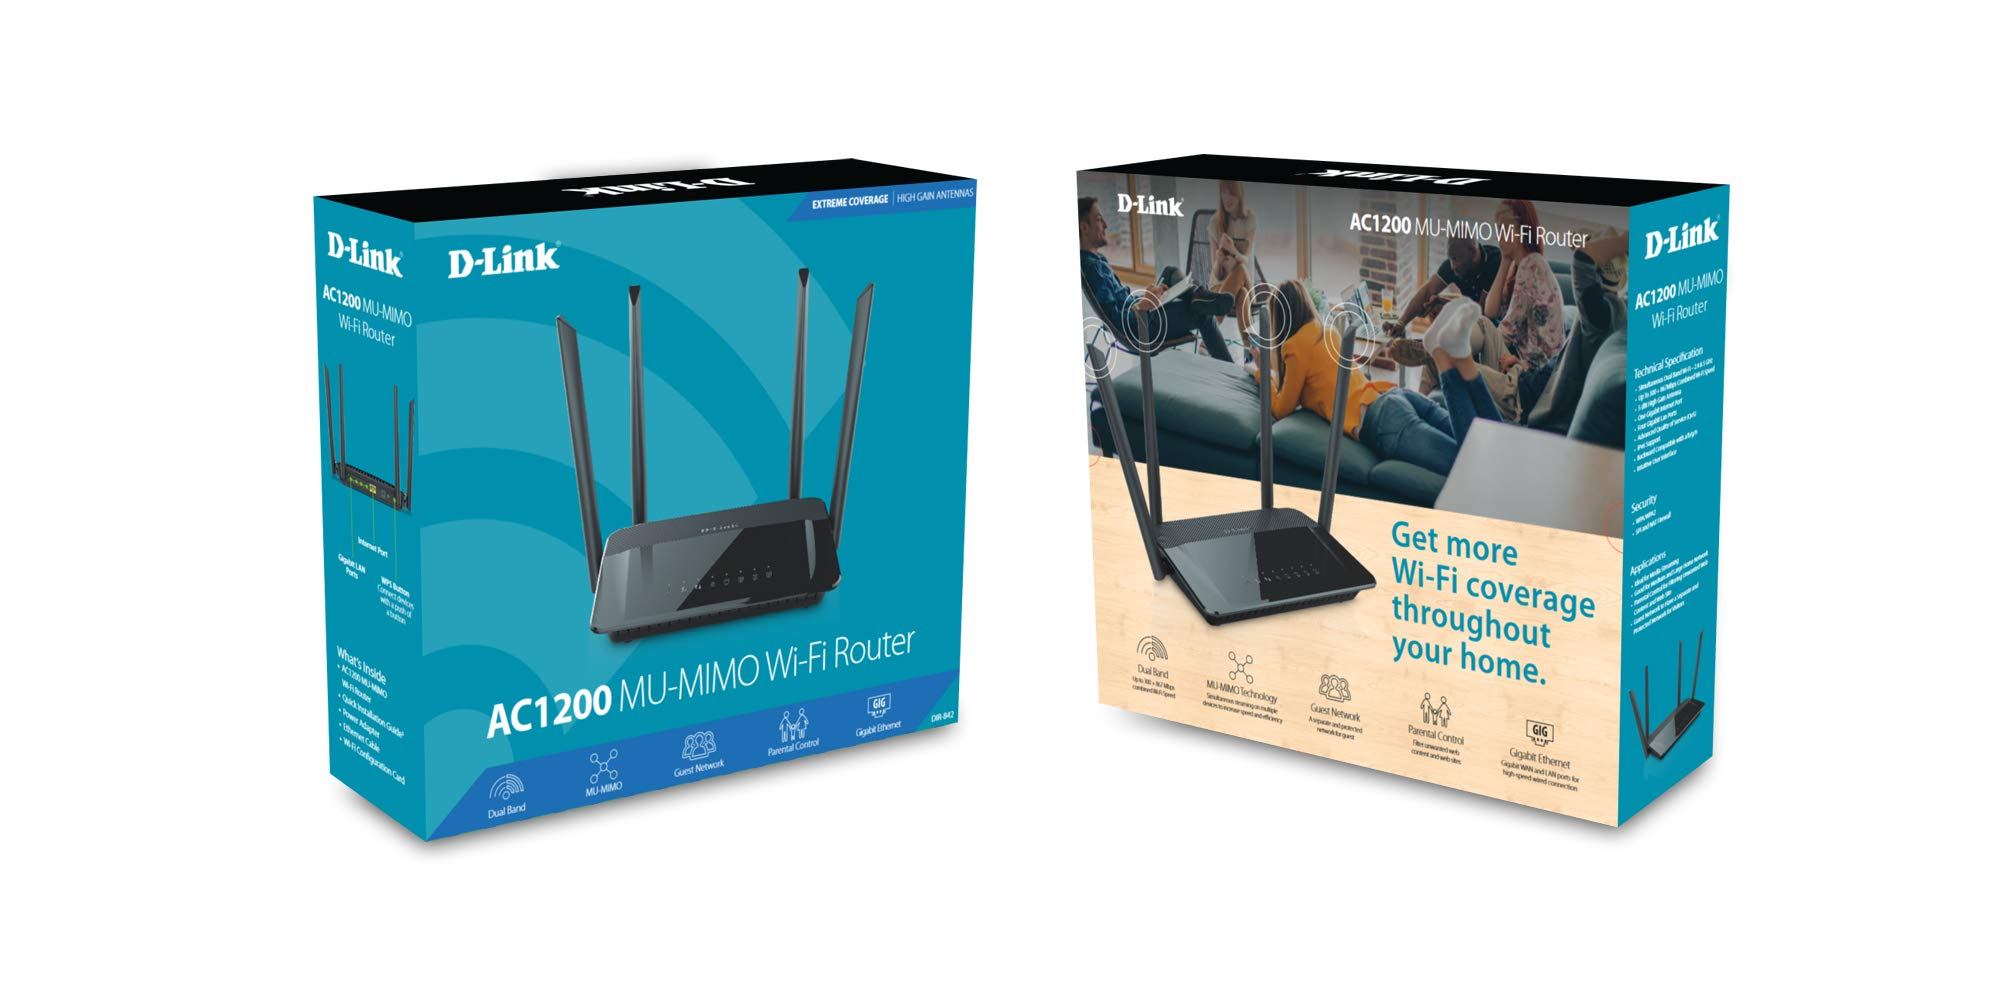 D-Link Wireless WiFi Router - Smart Dual Band - MU-MIMO - Powerful Dual Core Processor - Blazing Fast Wi-Fi for Gaming and 4K Streaming - Reliable Coverage 6 AC1200 high speed Router: Fast HD/3D streaming speeds (up to 300 Mbps on 2.4 gigahertz and 867 Mbps on 5 gigahertz) Simultaneous dual band Wi-Fi: browse the web on one band while streaming media on the other High gain antennas: 4 high powered antennas and amplifiers provide wider coverage throughout your home